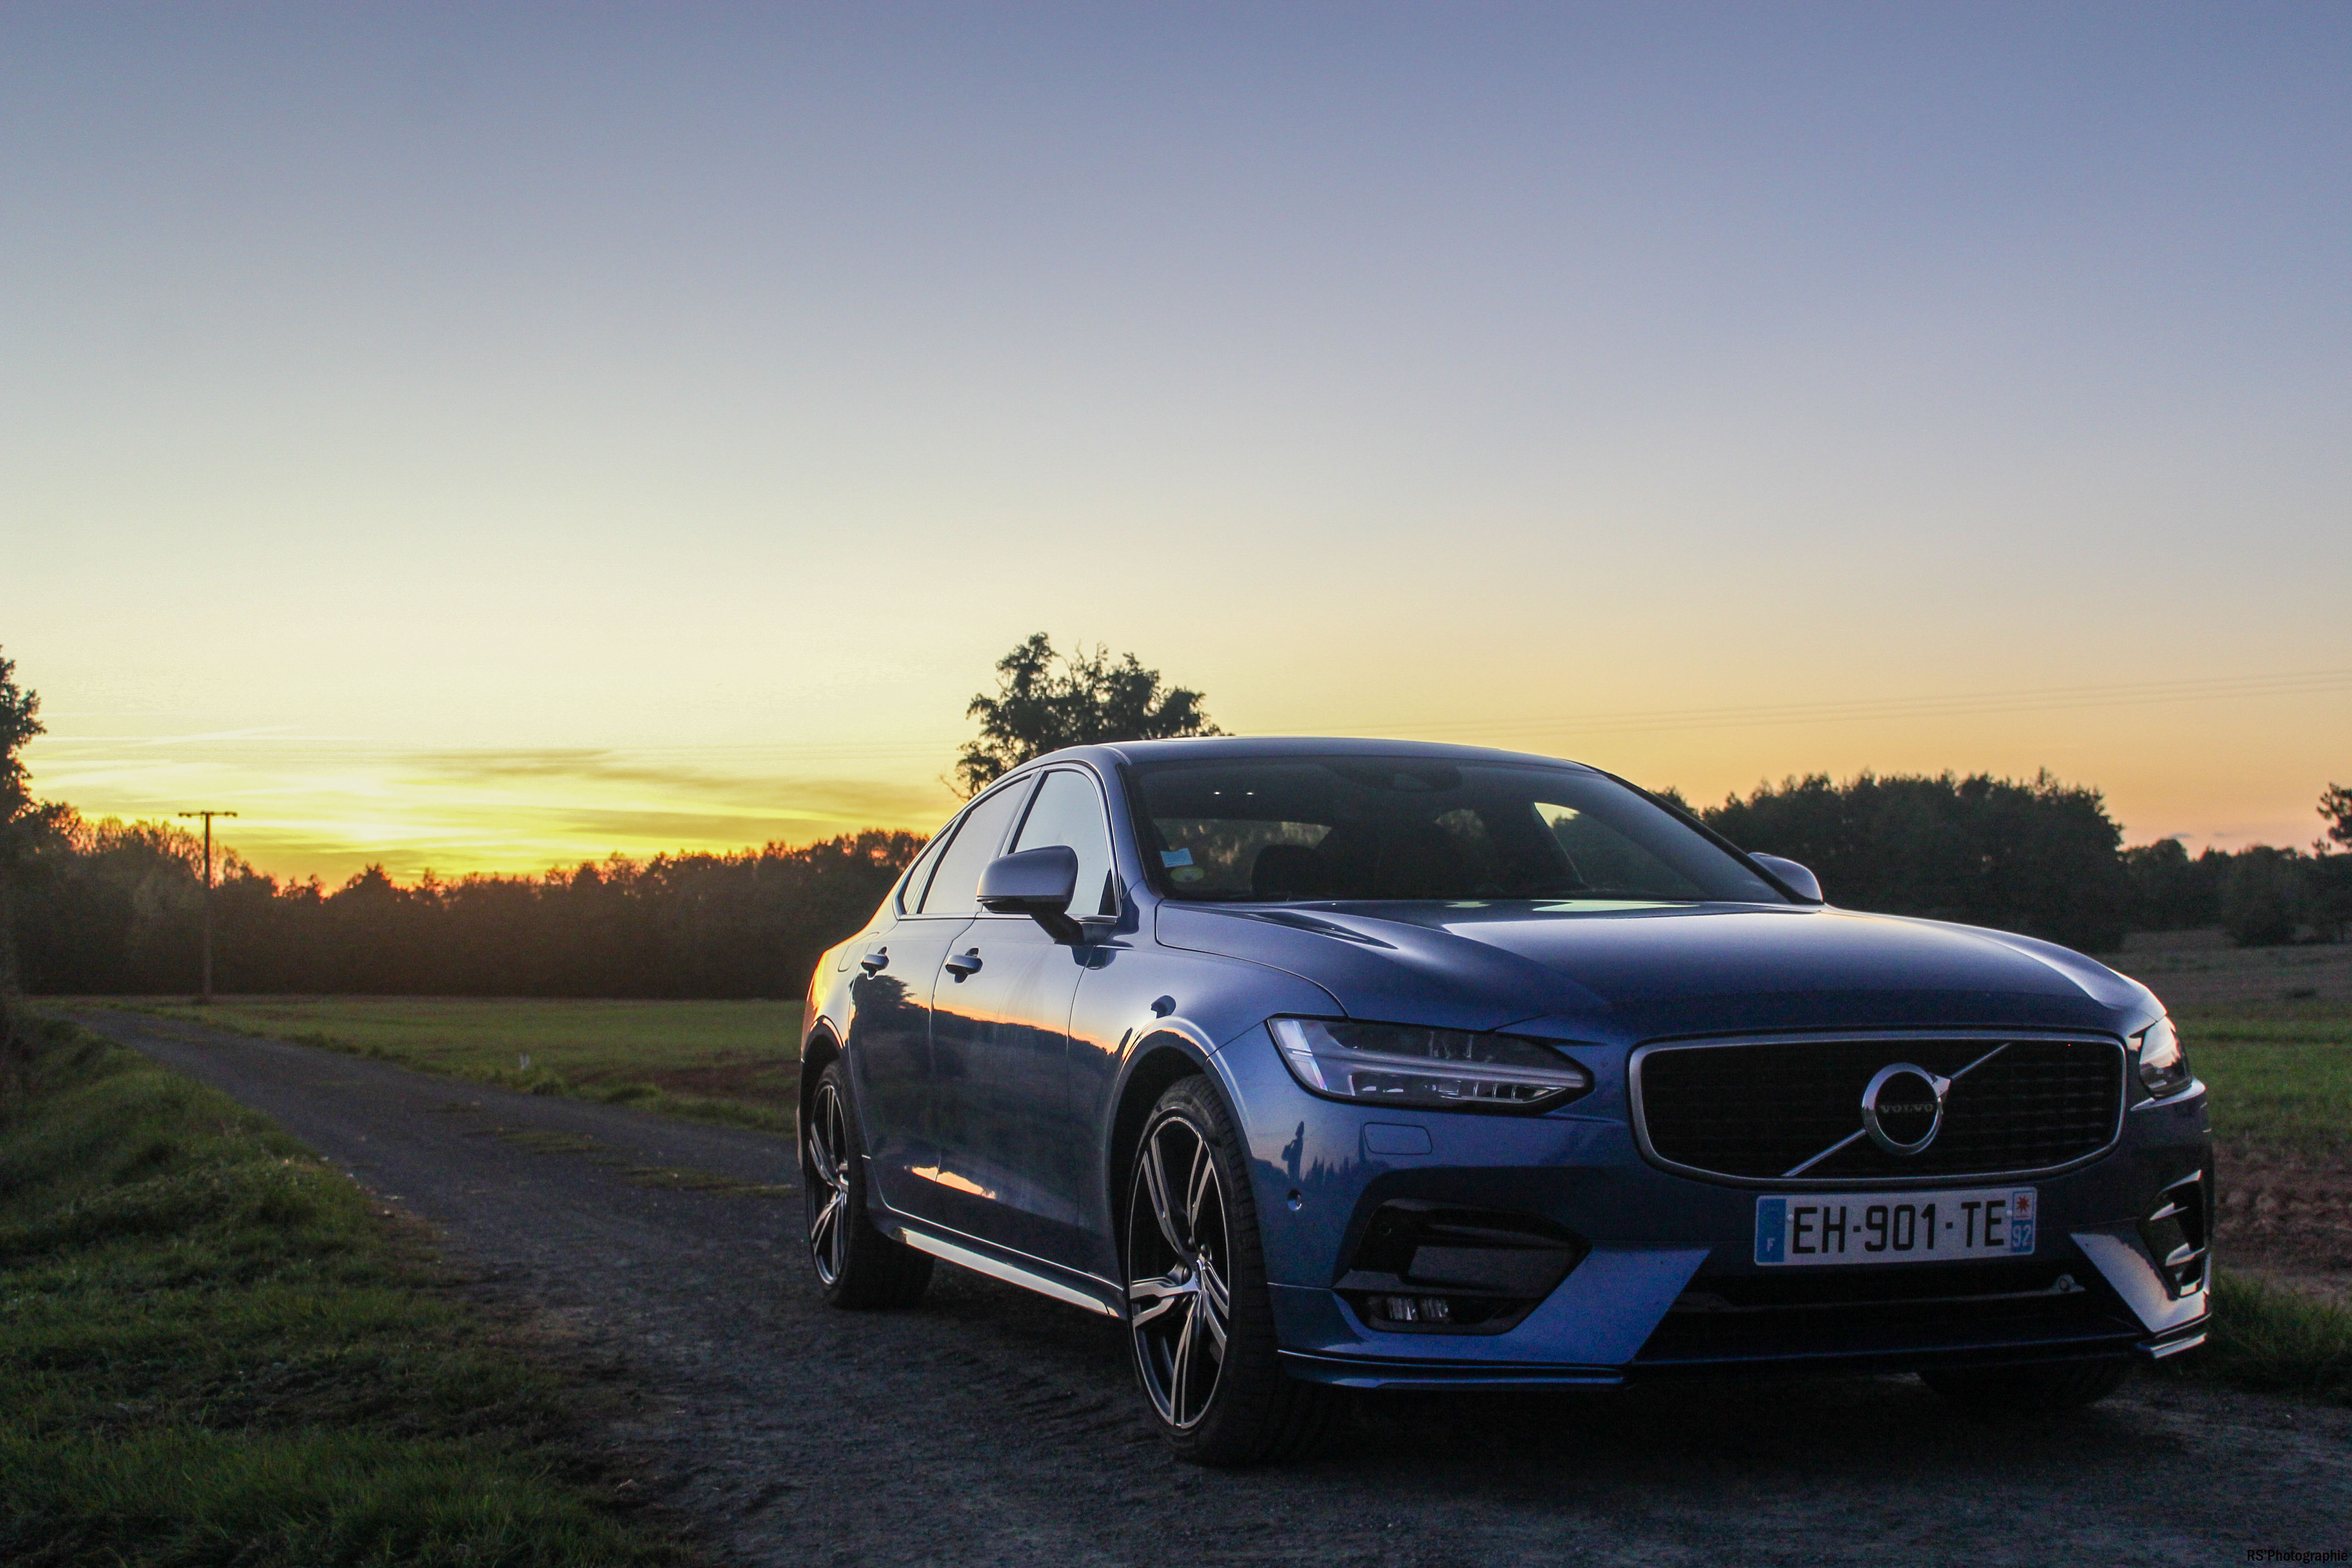 volvos9060-volvo-s90-d3-profil-side-Arnaud Demasier-RSPhotographie